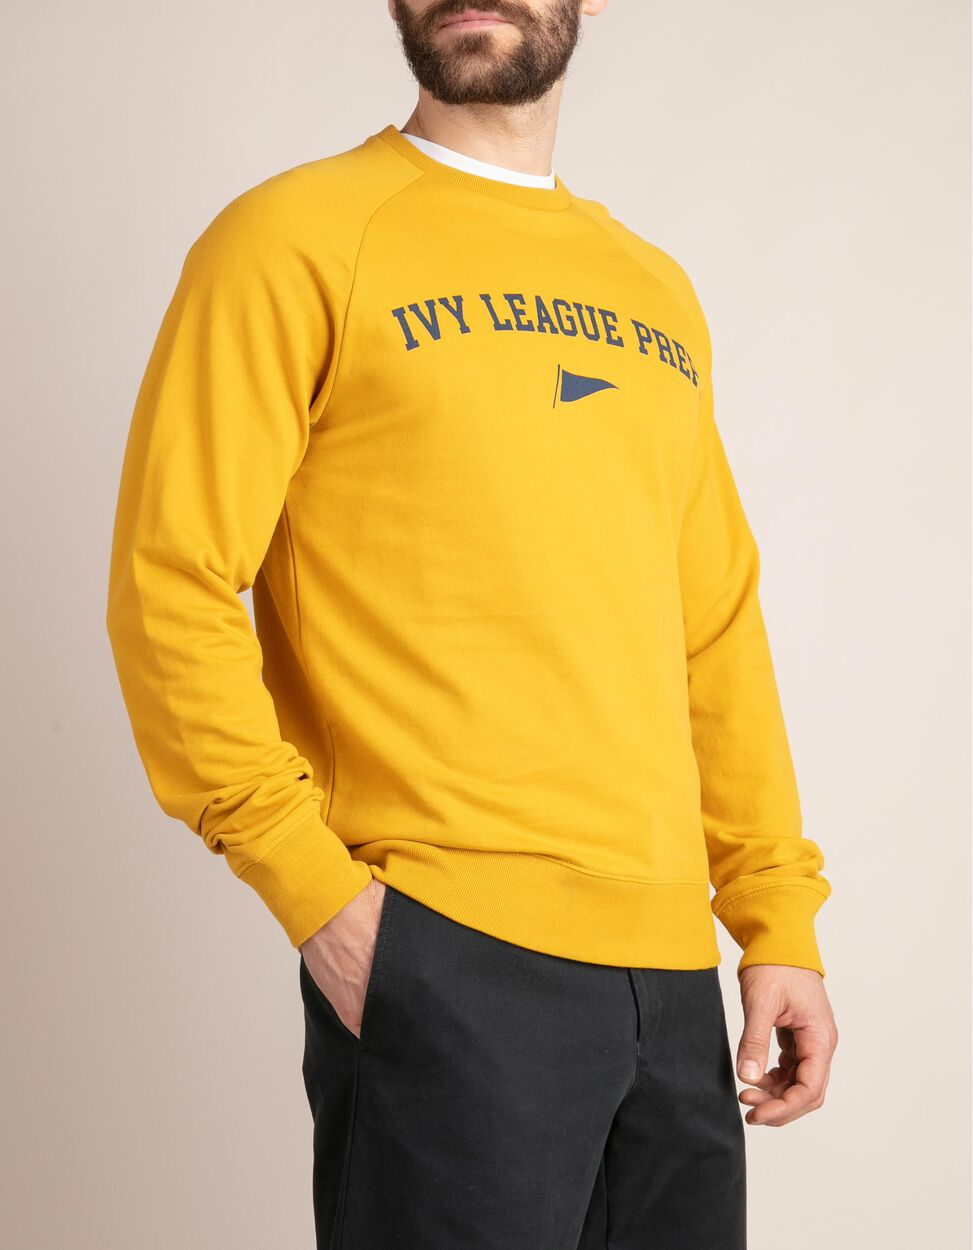 Sweatshirt Ivy League Prep